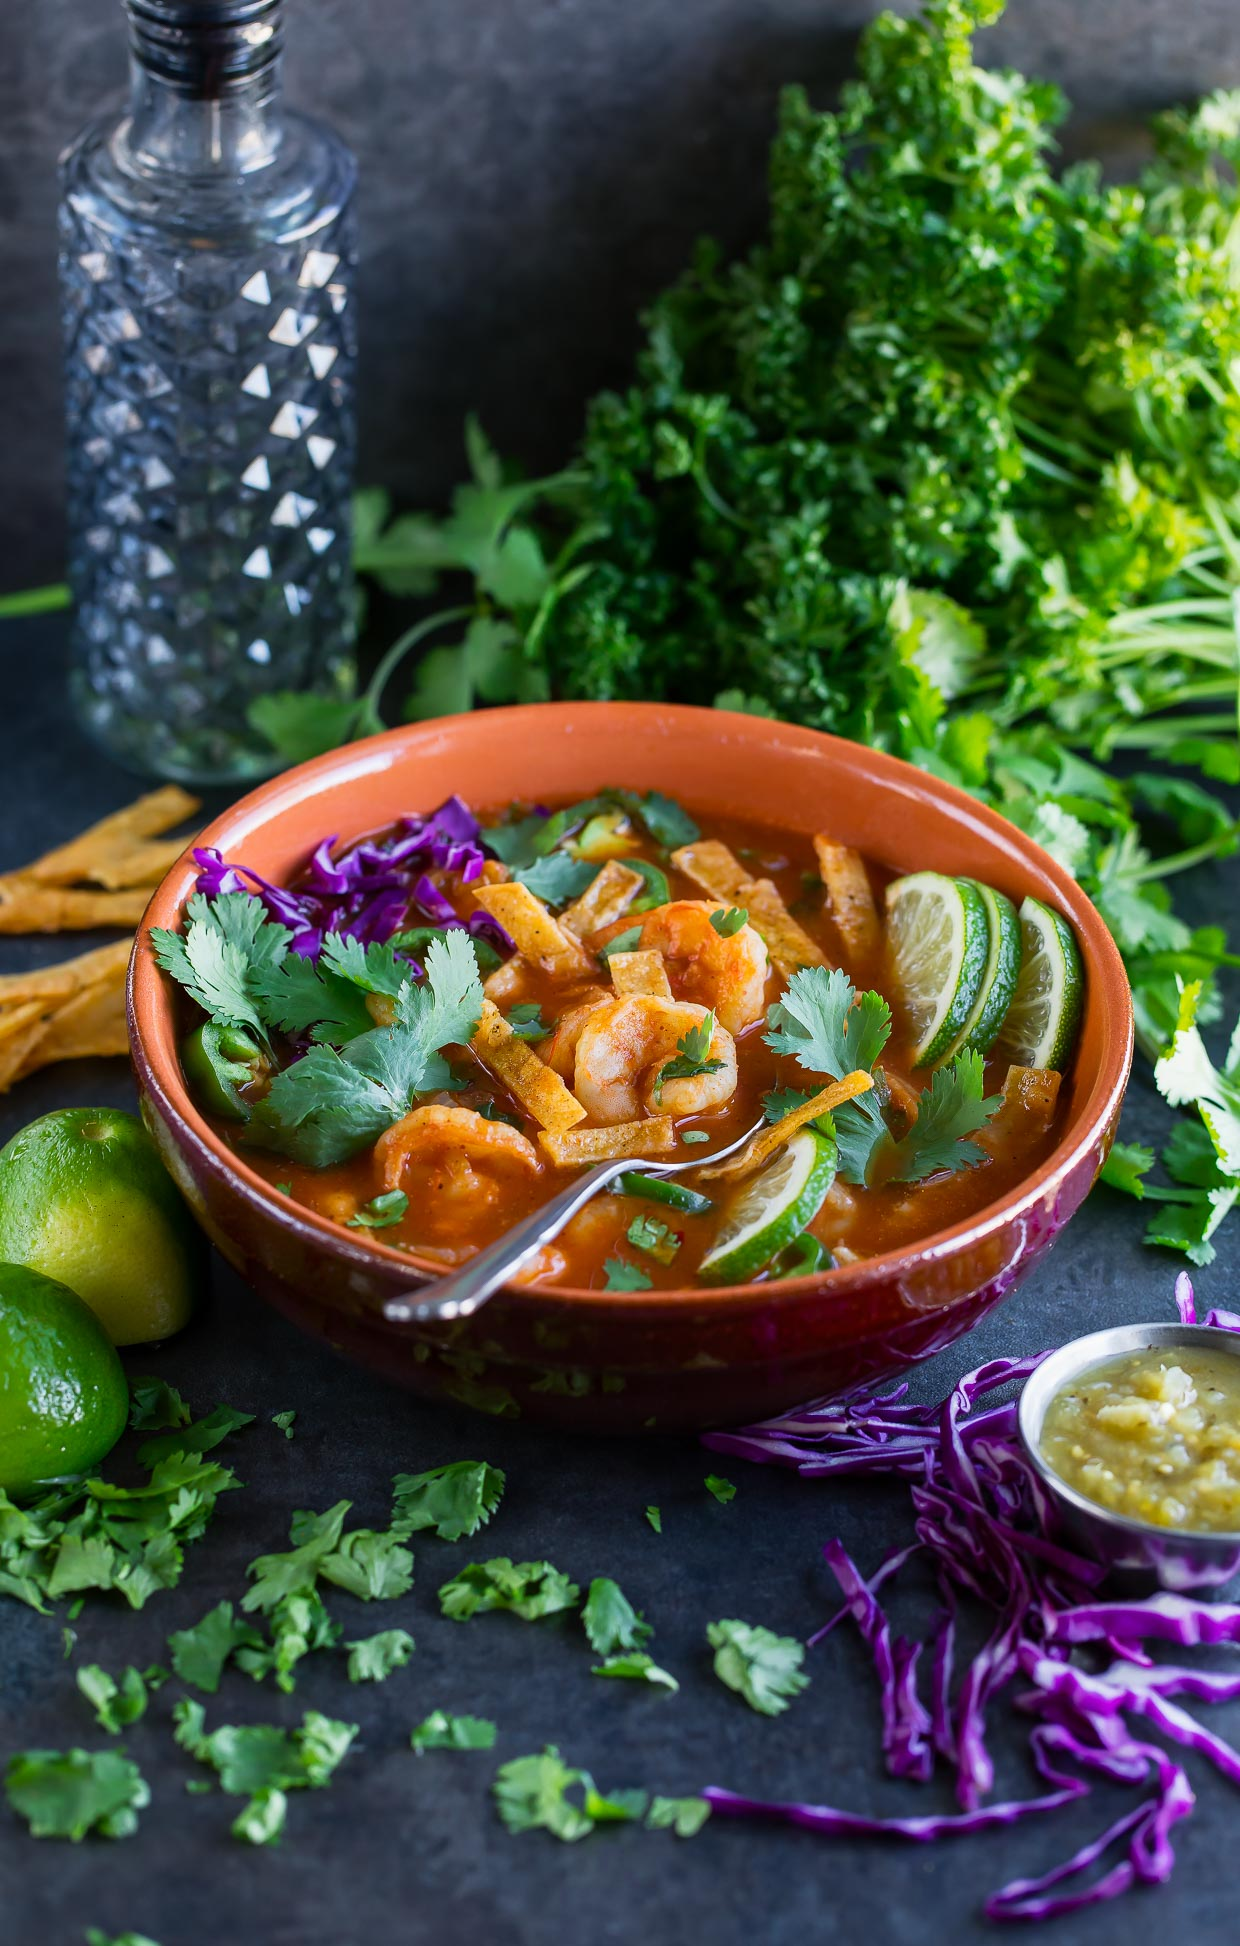 Spicy Shrimp Tortilla Soup ready in under 30 minutes and so crazy tasty! We are so totally in love with this delicious dairy-free soup.